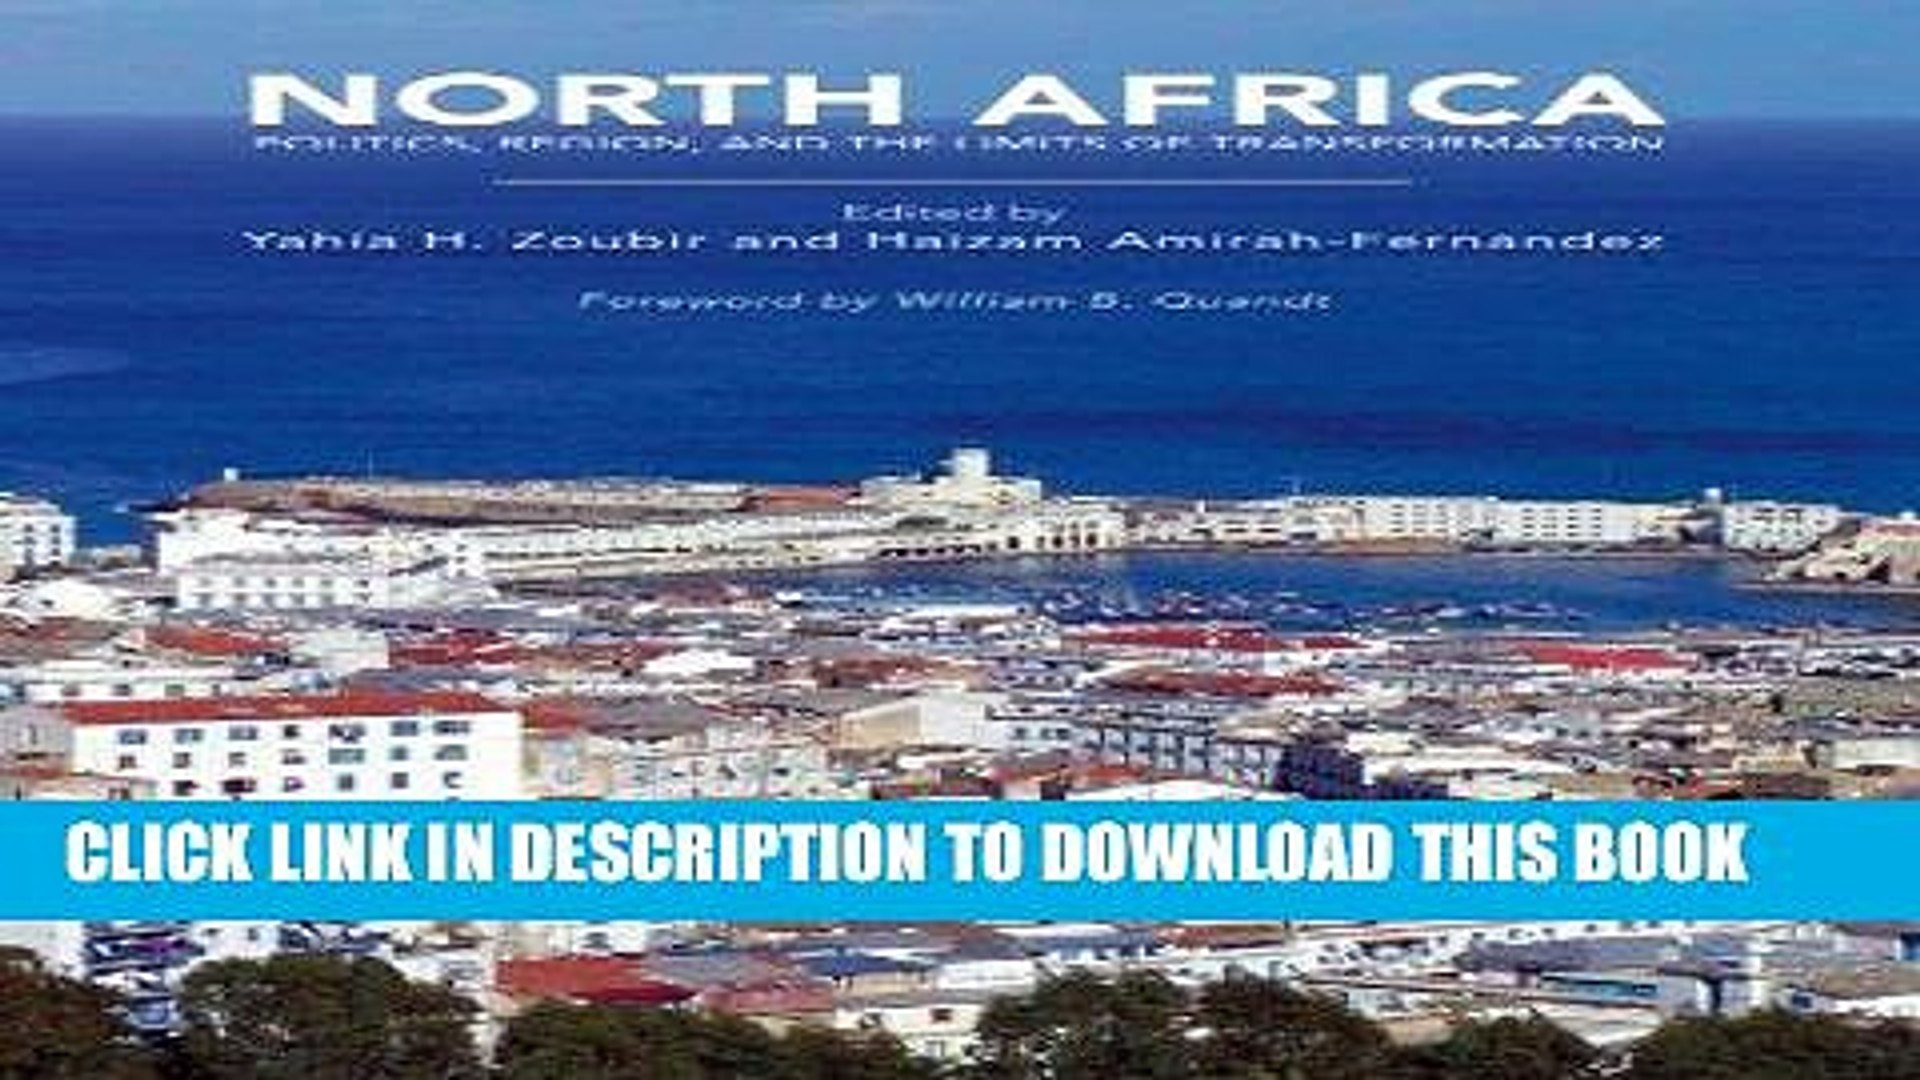 Best Seller North Africa: Politics, Region, and the Limits of Transformation Free Read